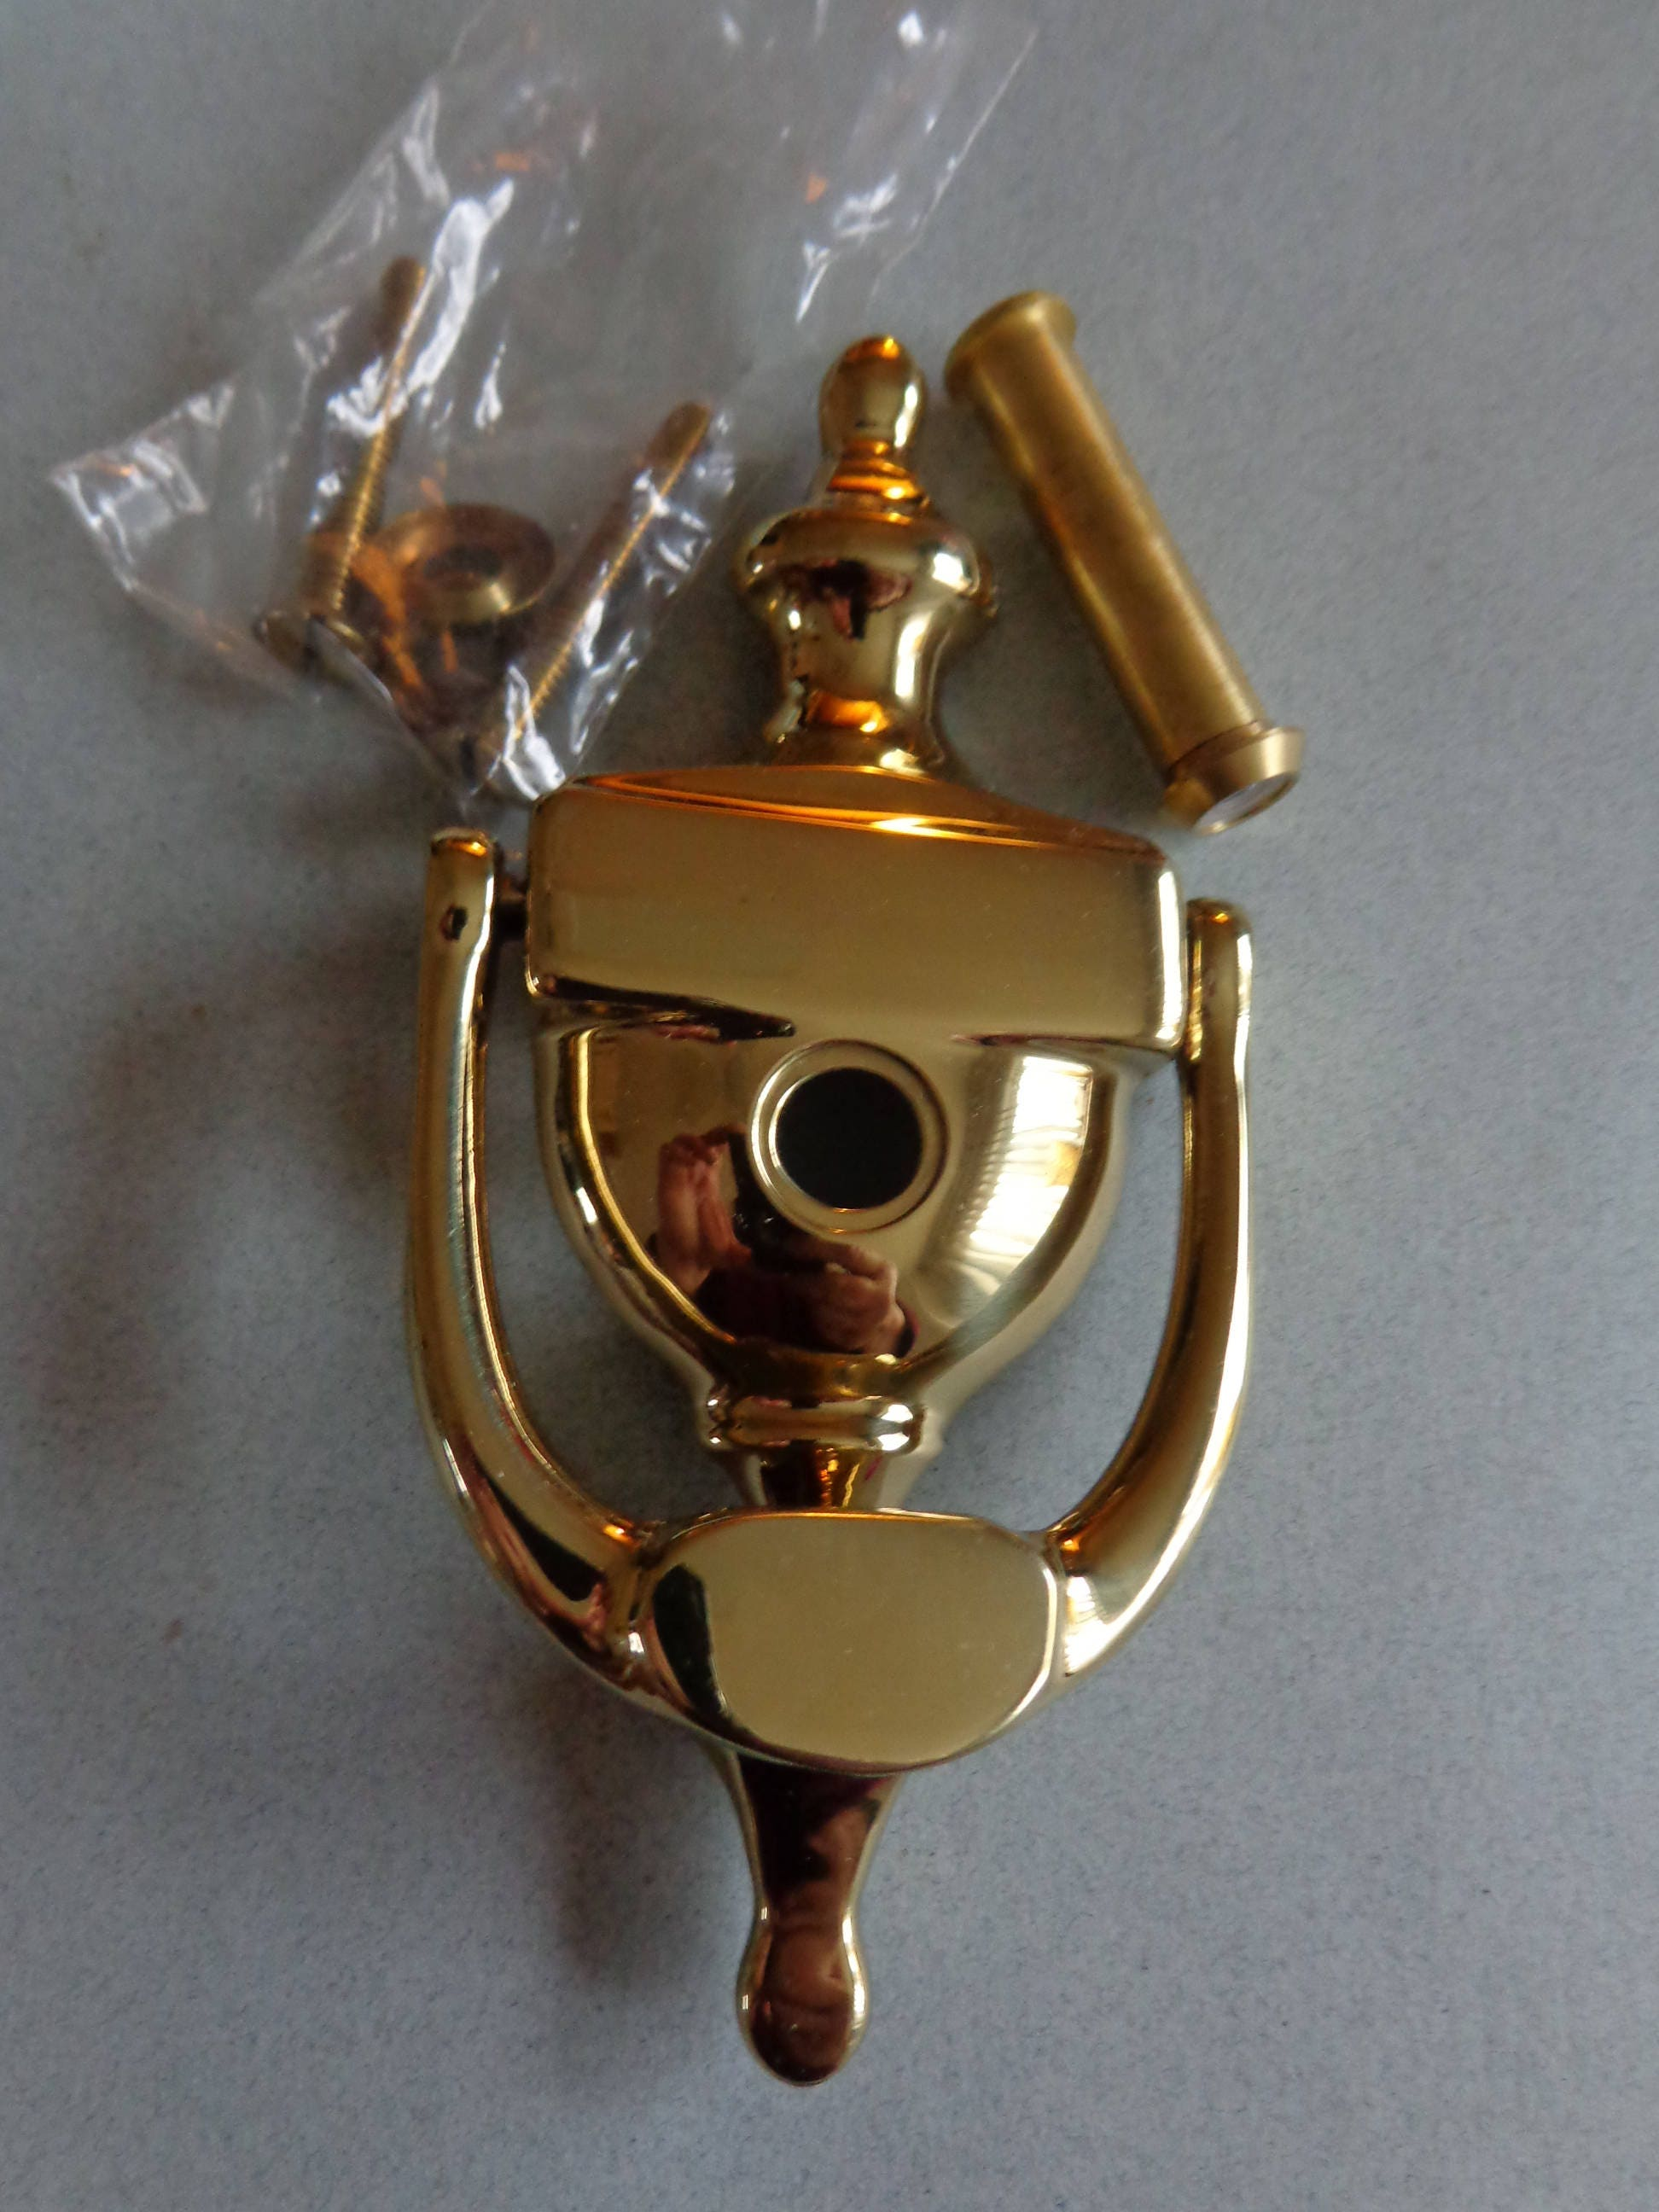 Vintage Ives Brass Door Knocker With Peep Hole Veiw Comes With Screws